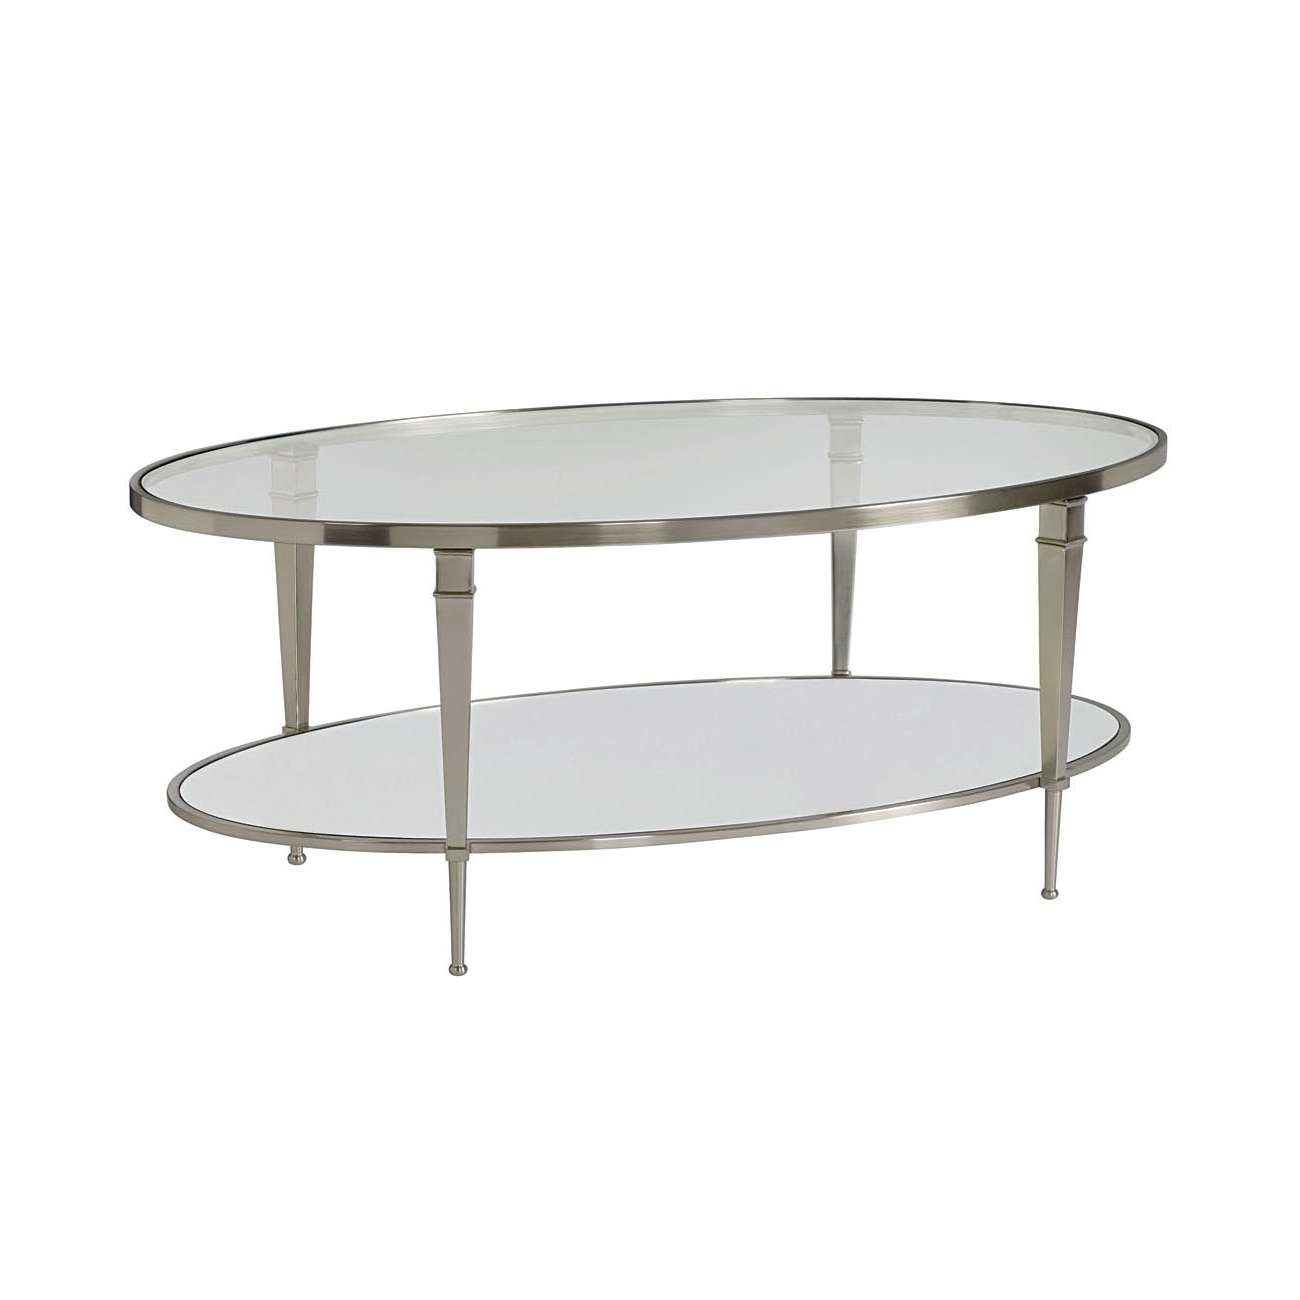 Hammary 173 912 Mallory Oval Cocktail Table In Satin Nickel For Best And Newest Antique Mirrored Coffee Tables (View 8 of 20)